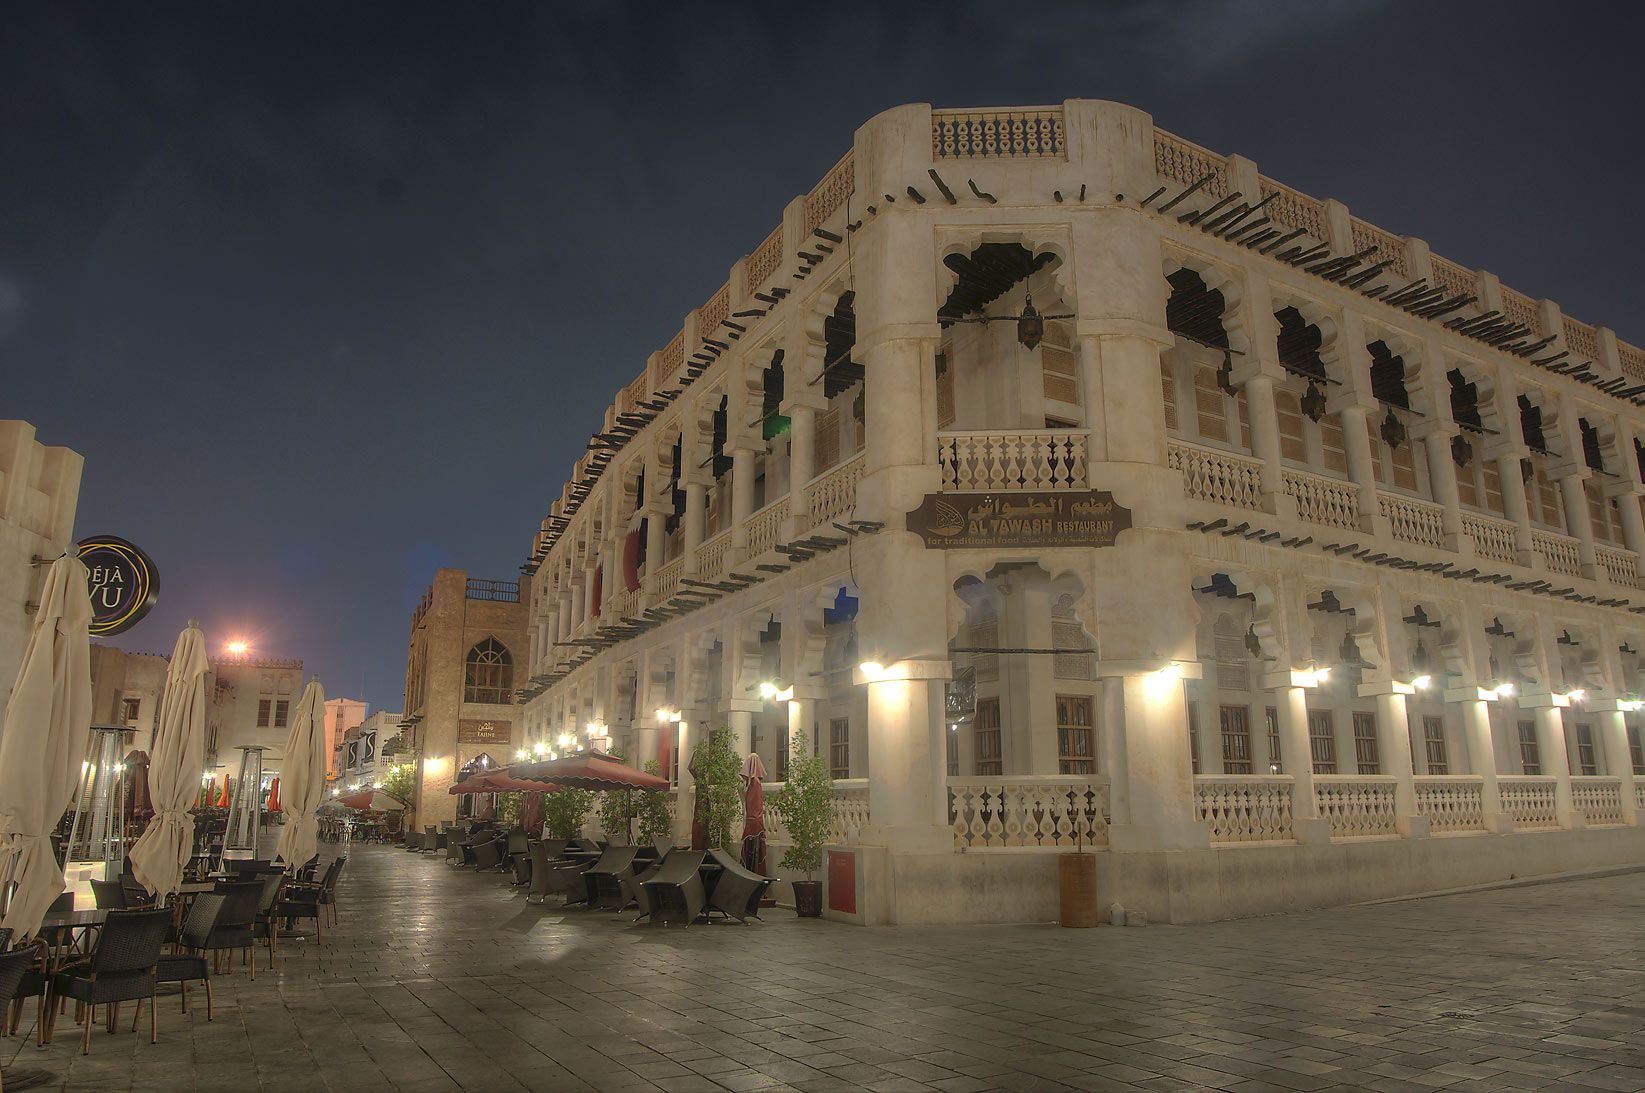 Al Tawash Restaurant in Souq Waqif at early morning. Doha, Qatar